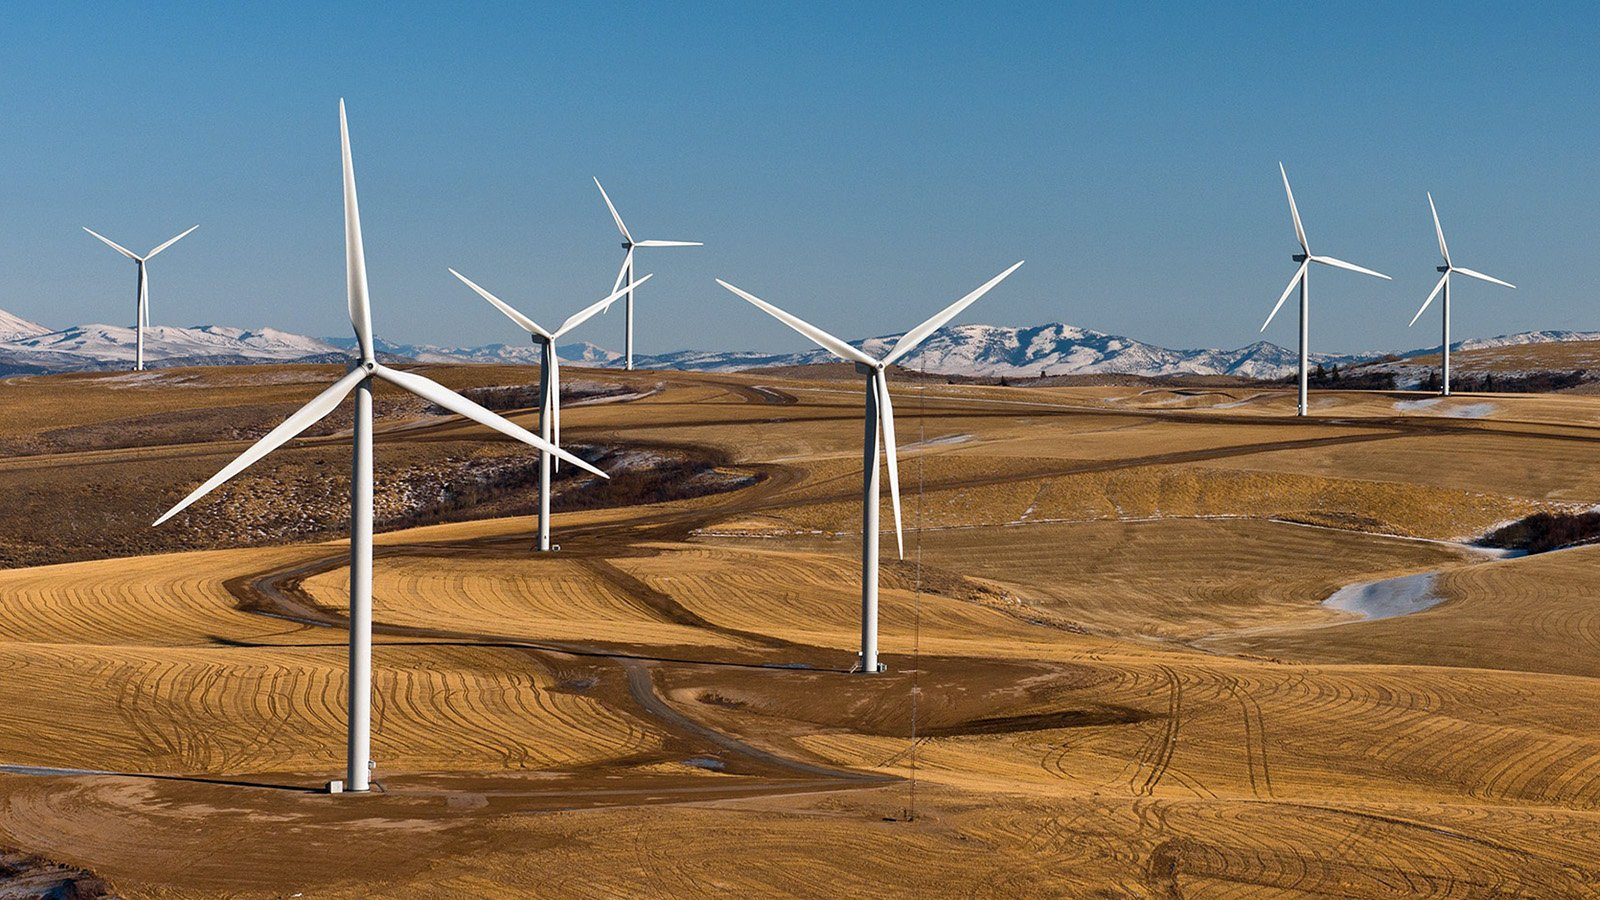 Wind turbines dot the landscape. Photo courtesy of Creative Commons